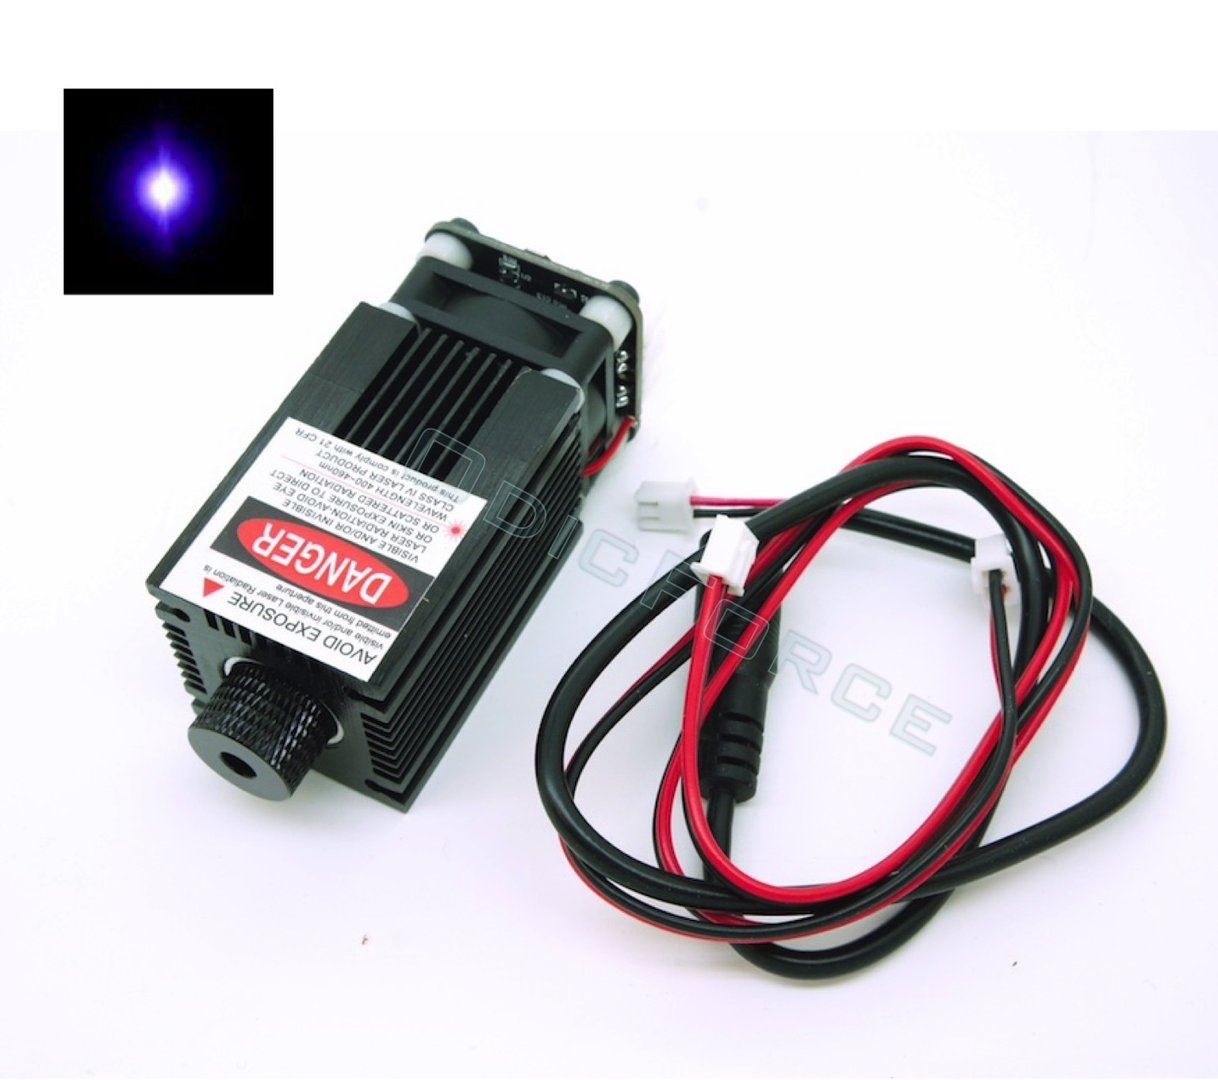 500mW 405nm Violet Focusing Laser Module (12V) with Integrated TTL (PWM) Driver